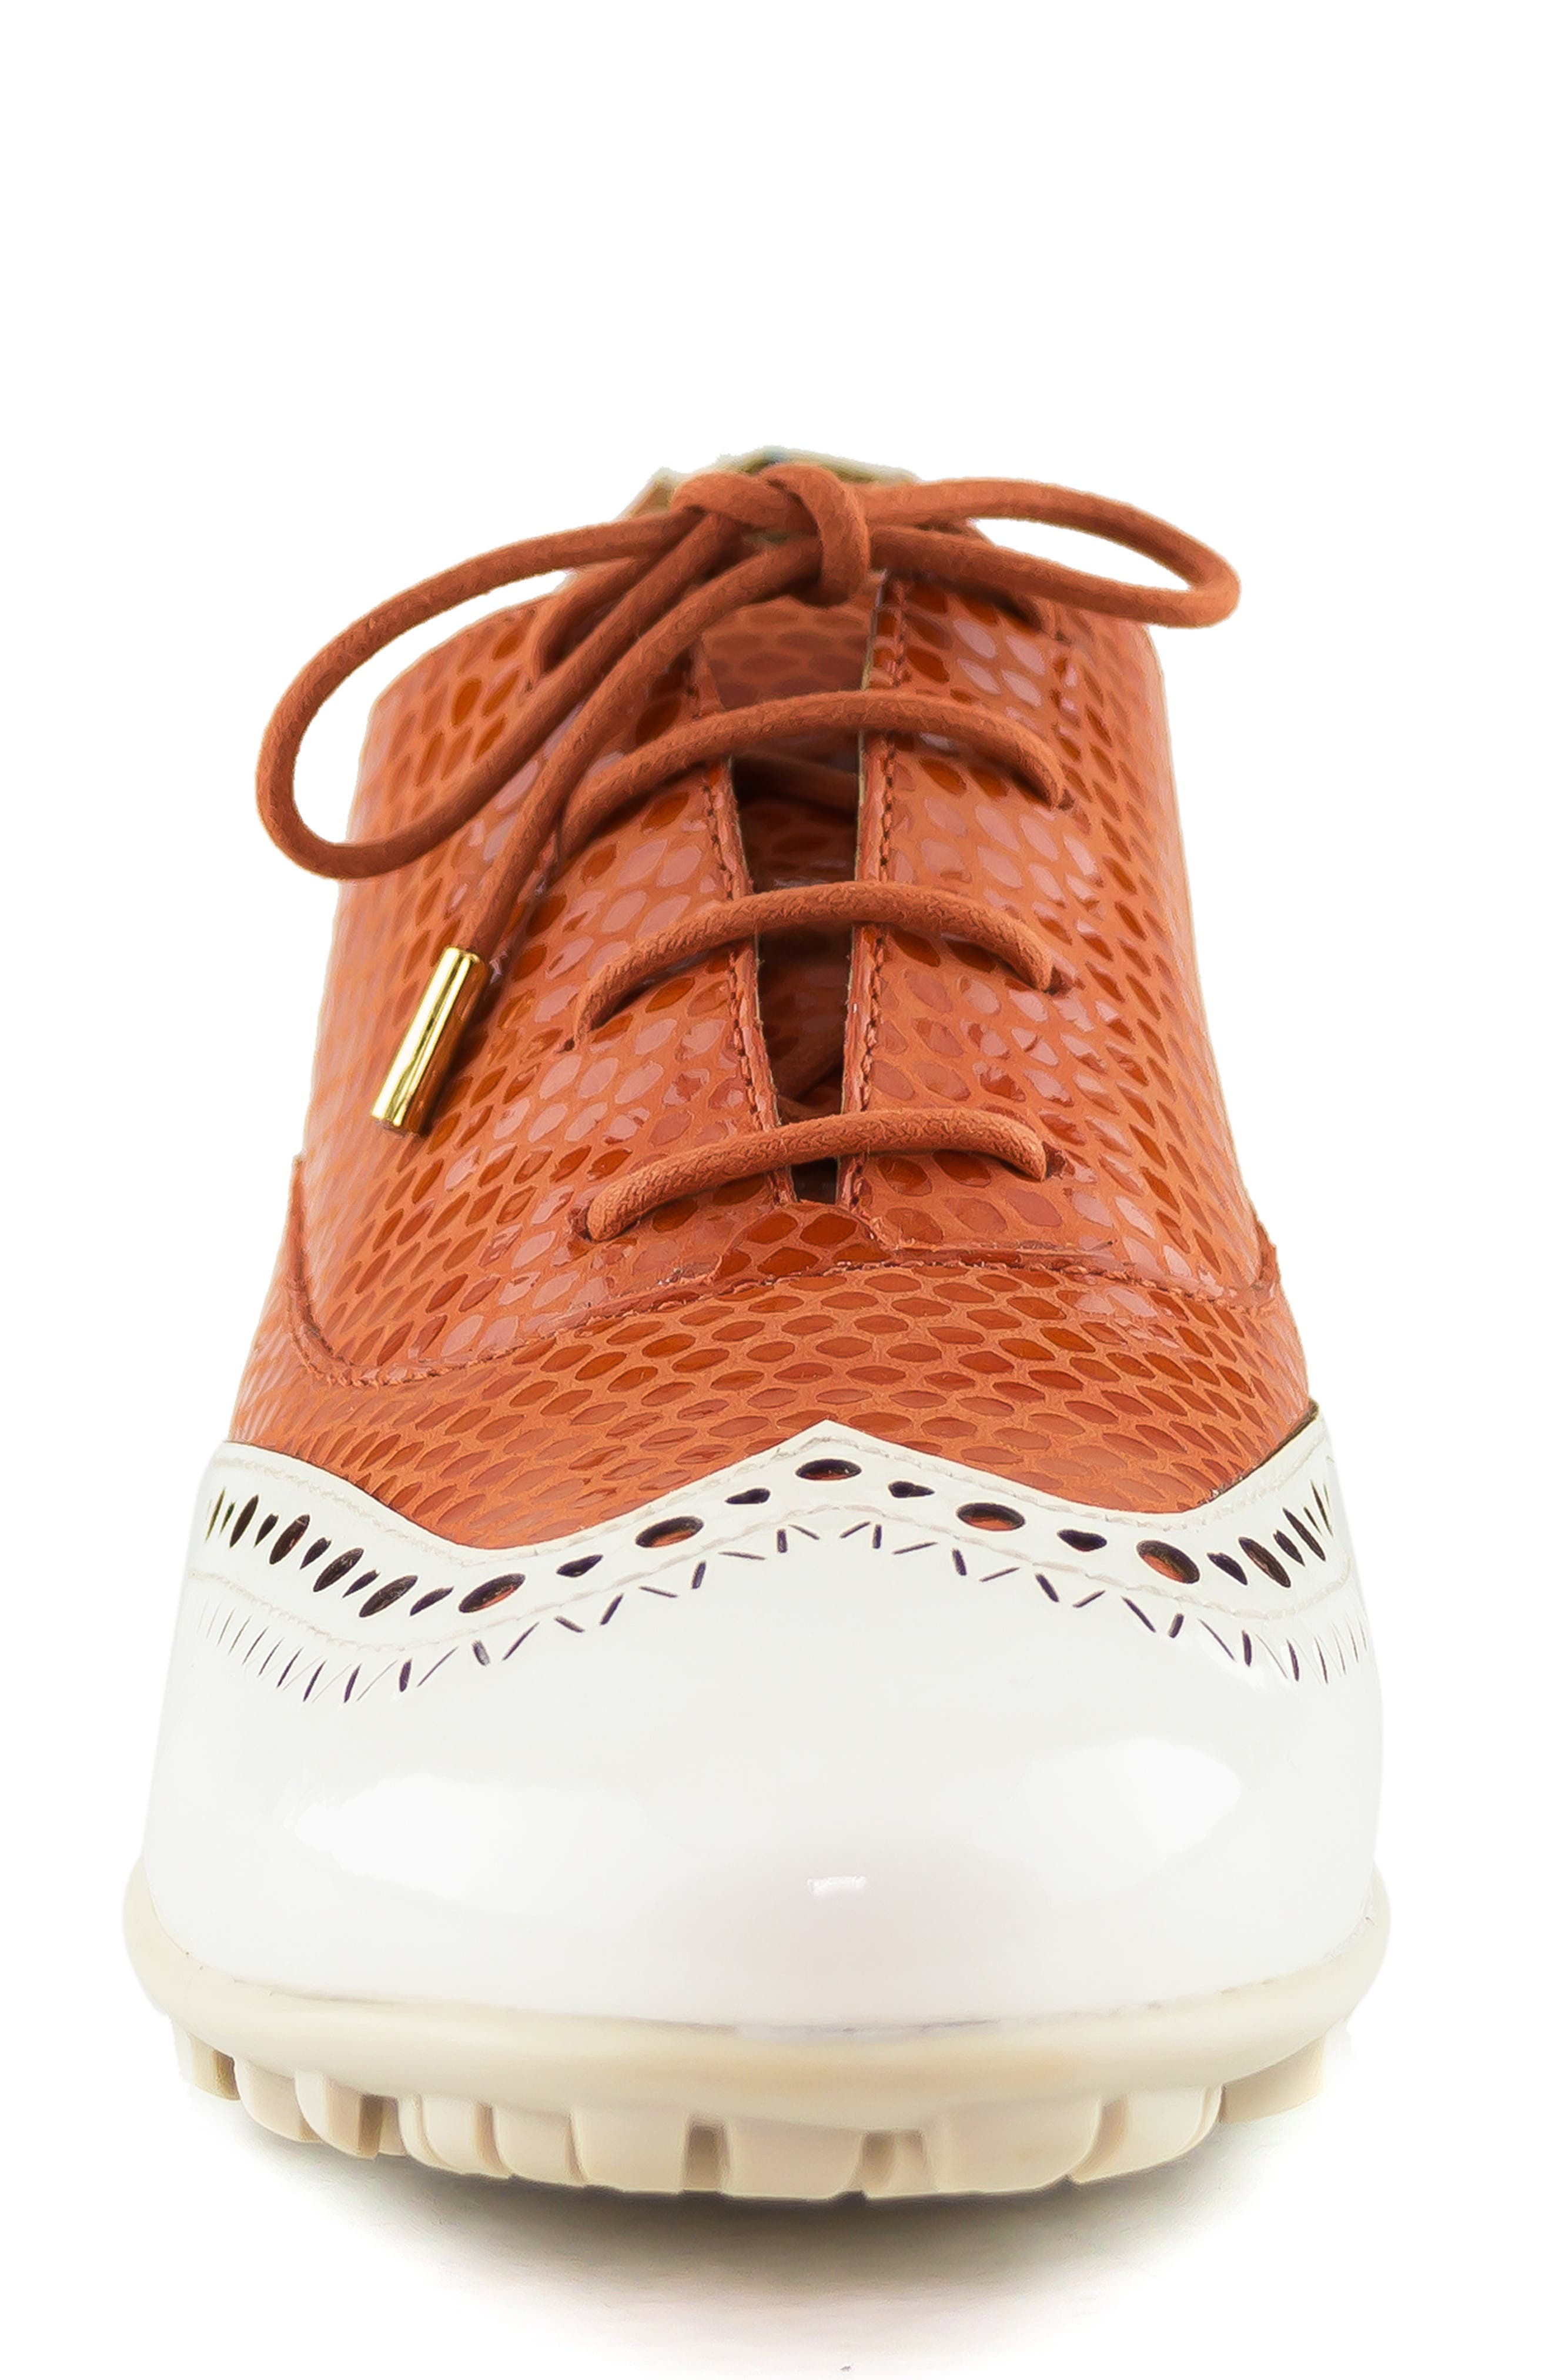 MARC JOSEPH NEW YORK, NYC Golf Loafer, Alternate thumbnail 4, color, CORAL SNAKE PRINT LEATHER